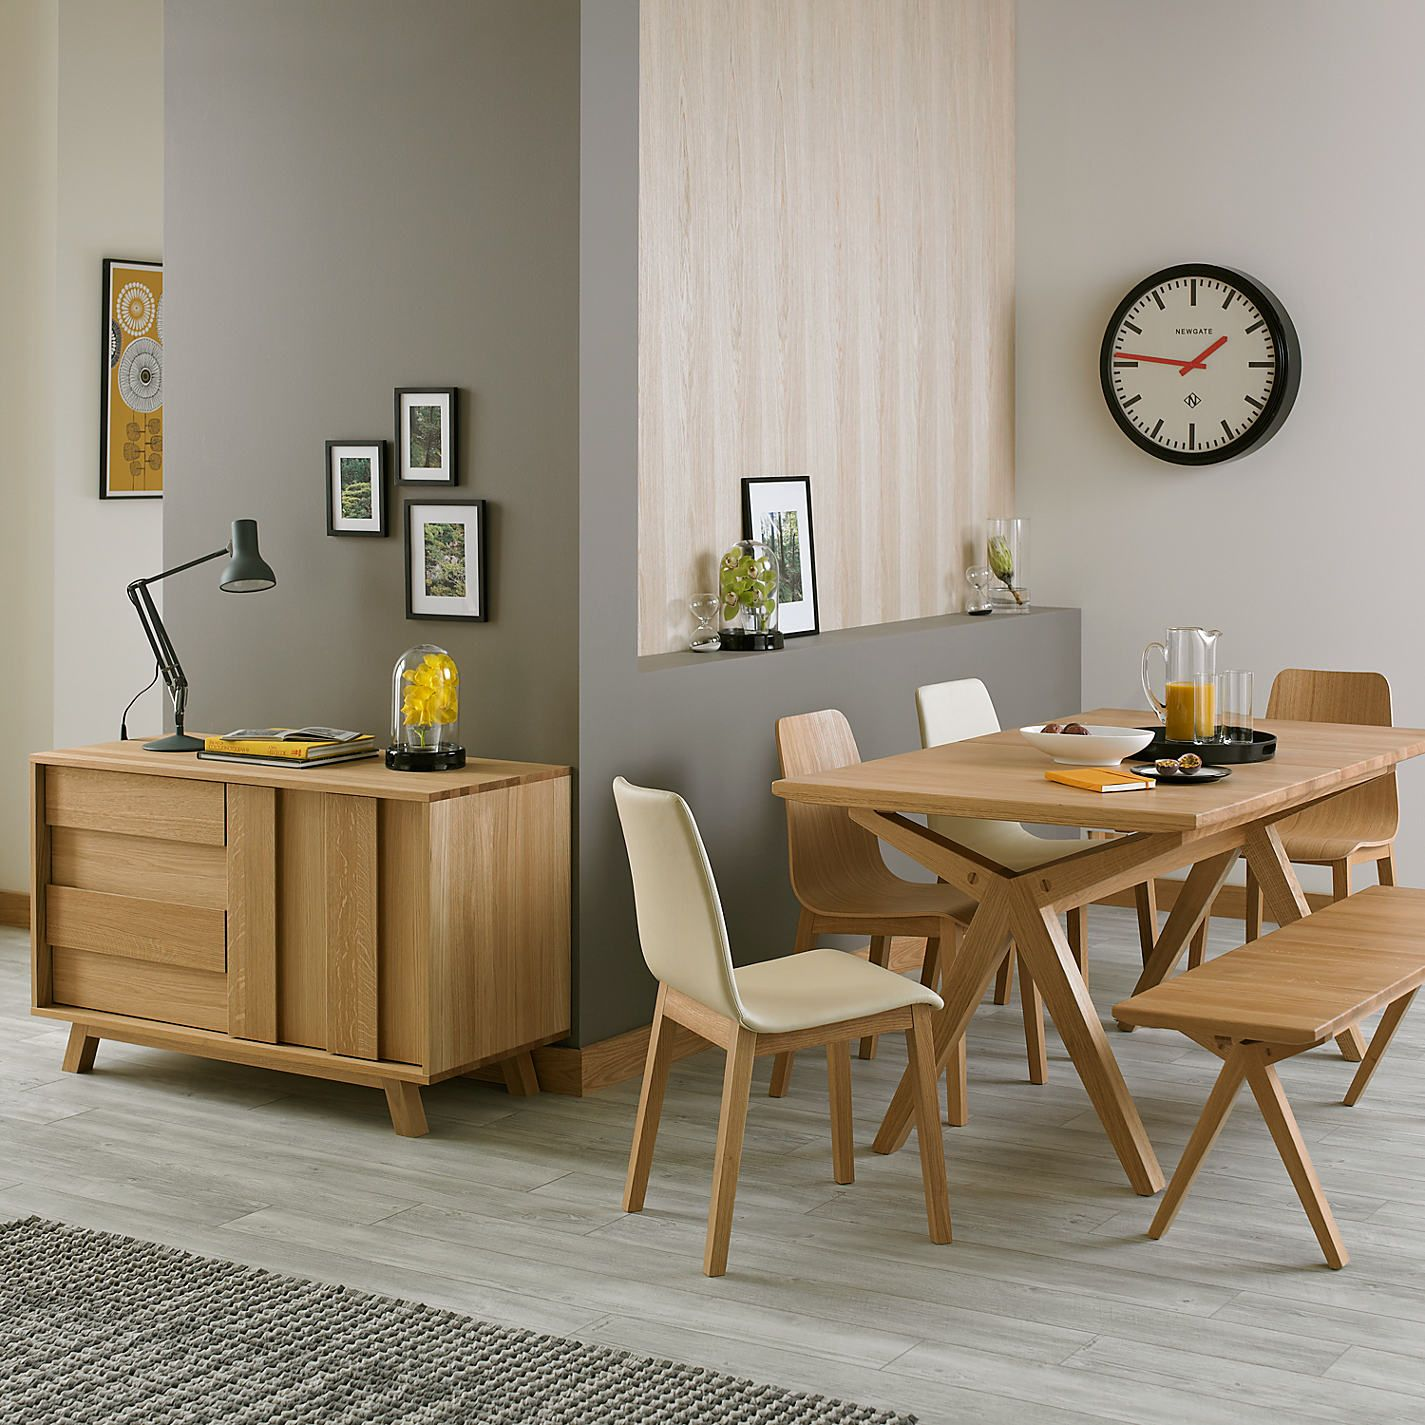 Johnlewis  Natural Dining  Pinterest  Natural And House Prepossessing John Lewis Dining Room Furniture Decorating Design